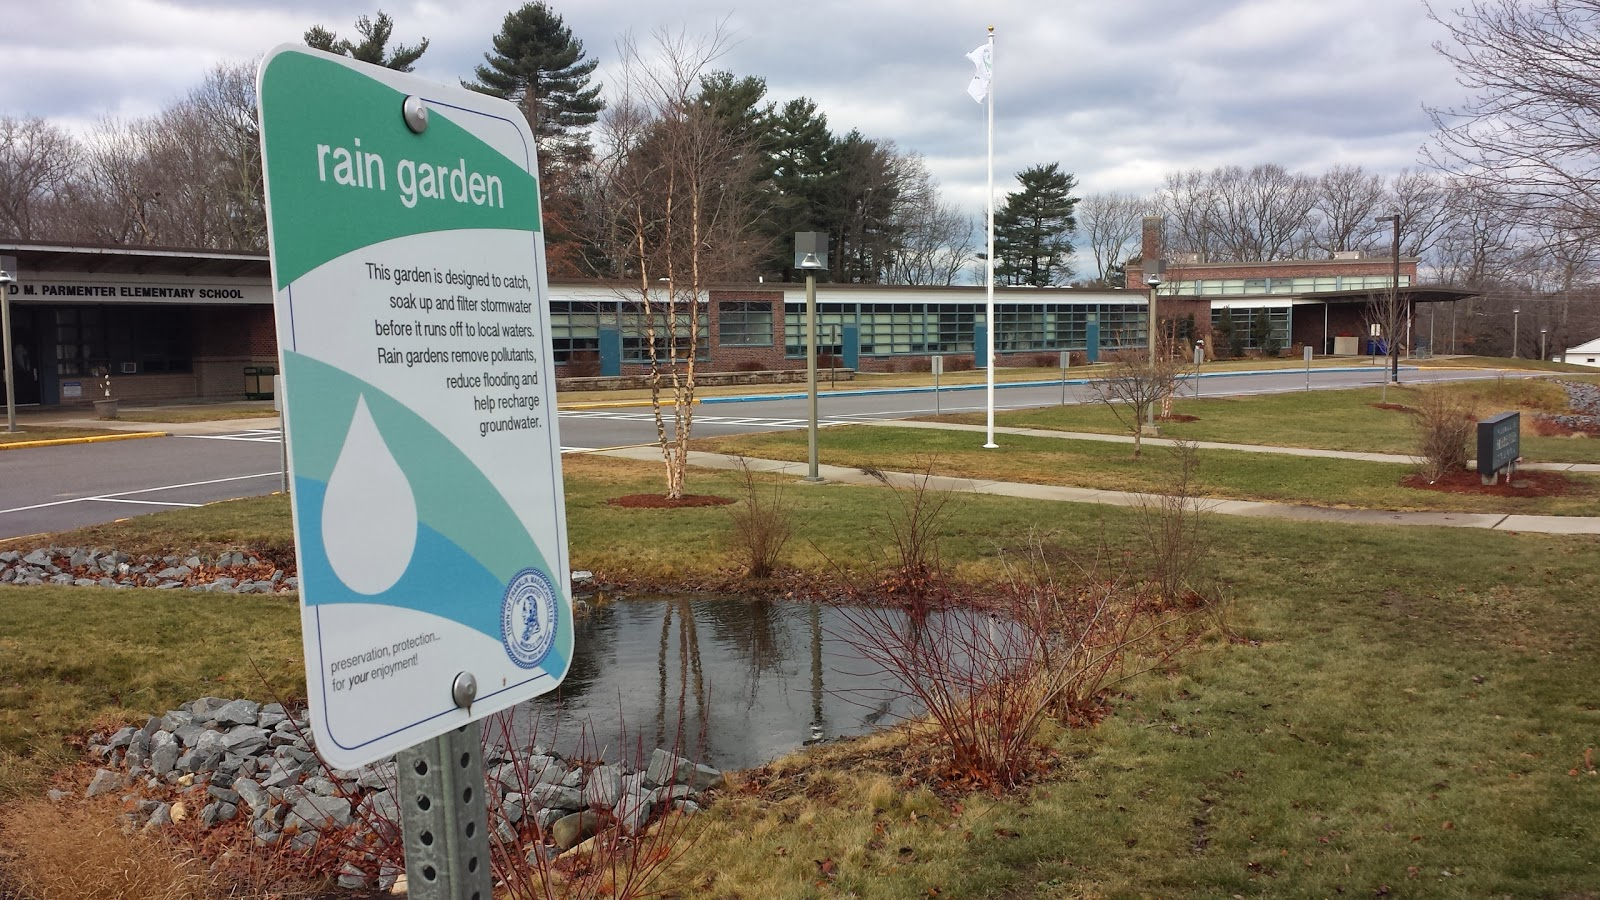 rain garden at Parmenter School